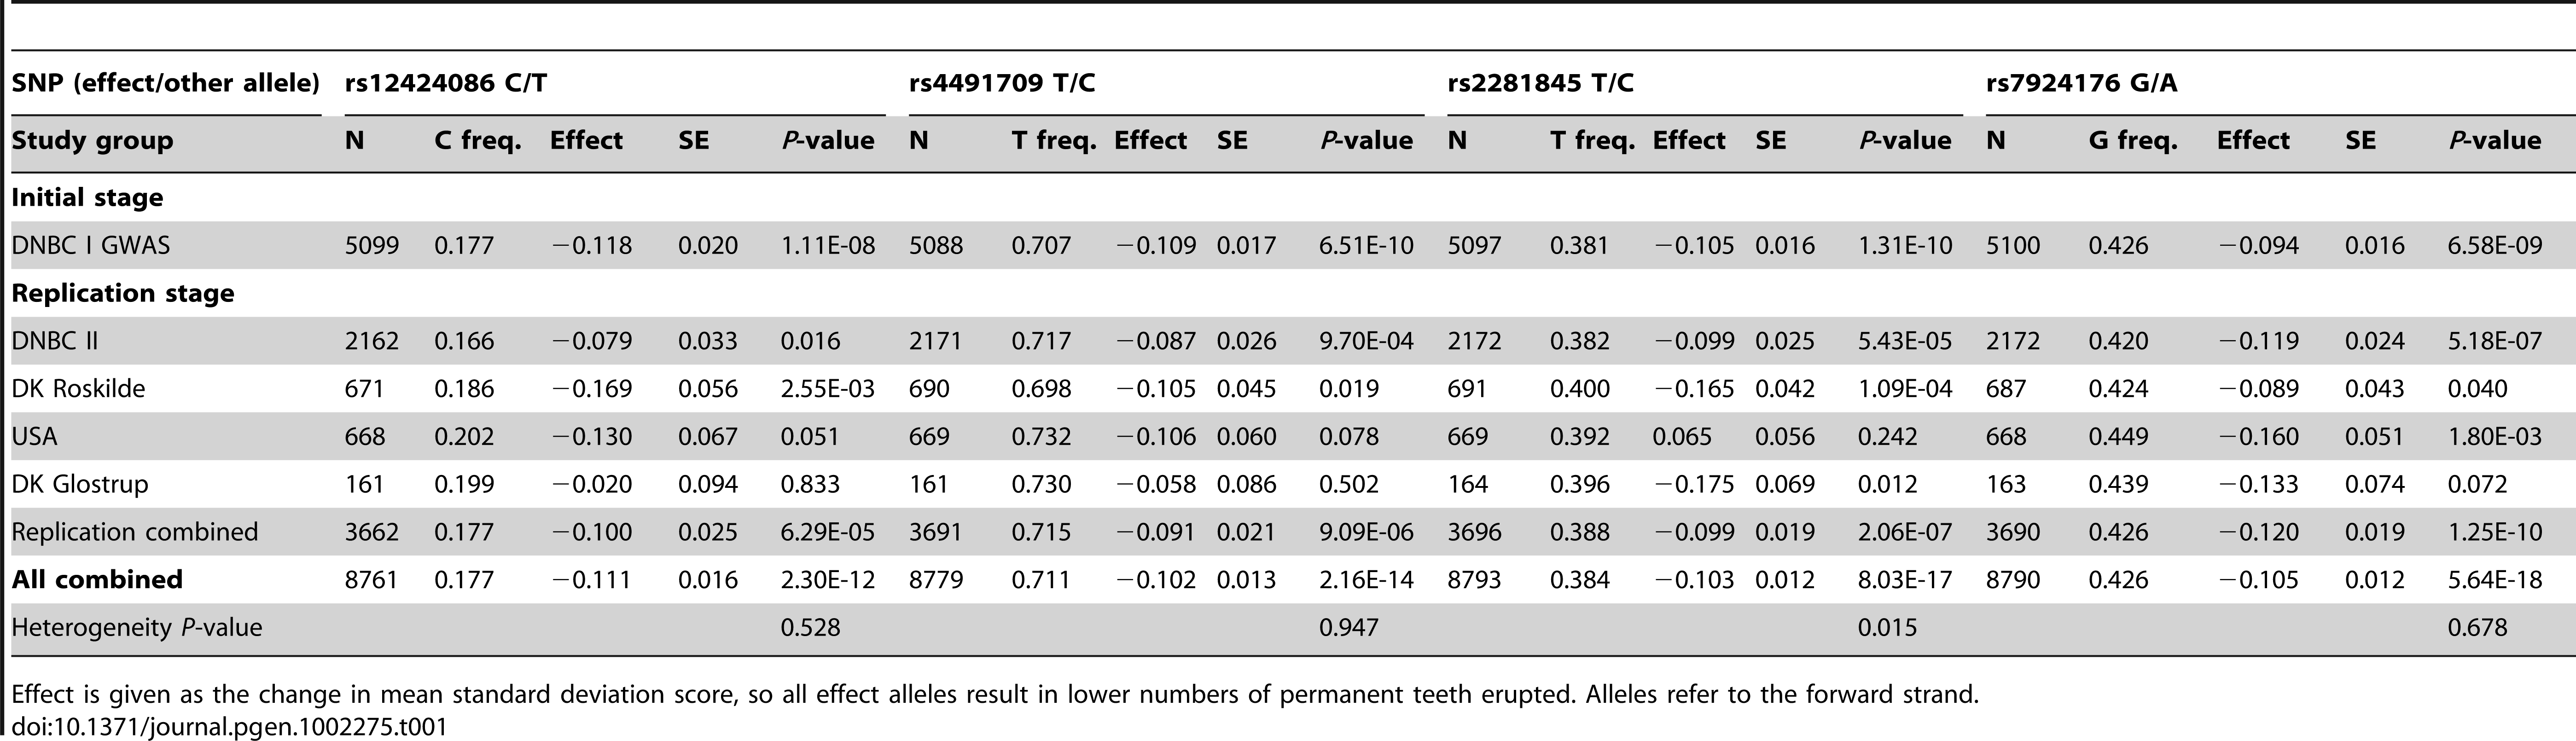 Initial, replication, and combined results for number of permanent teeth erupted between age 6 and 14 years, analyzed as age-adjusted standard deviation scores averaged over multiple time points.